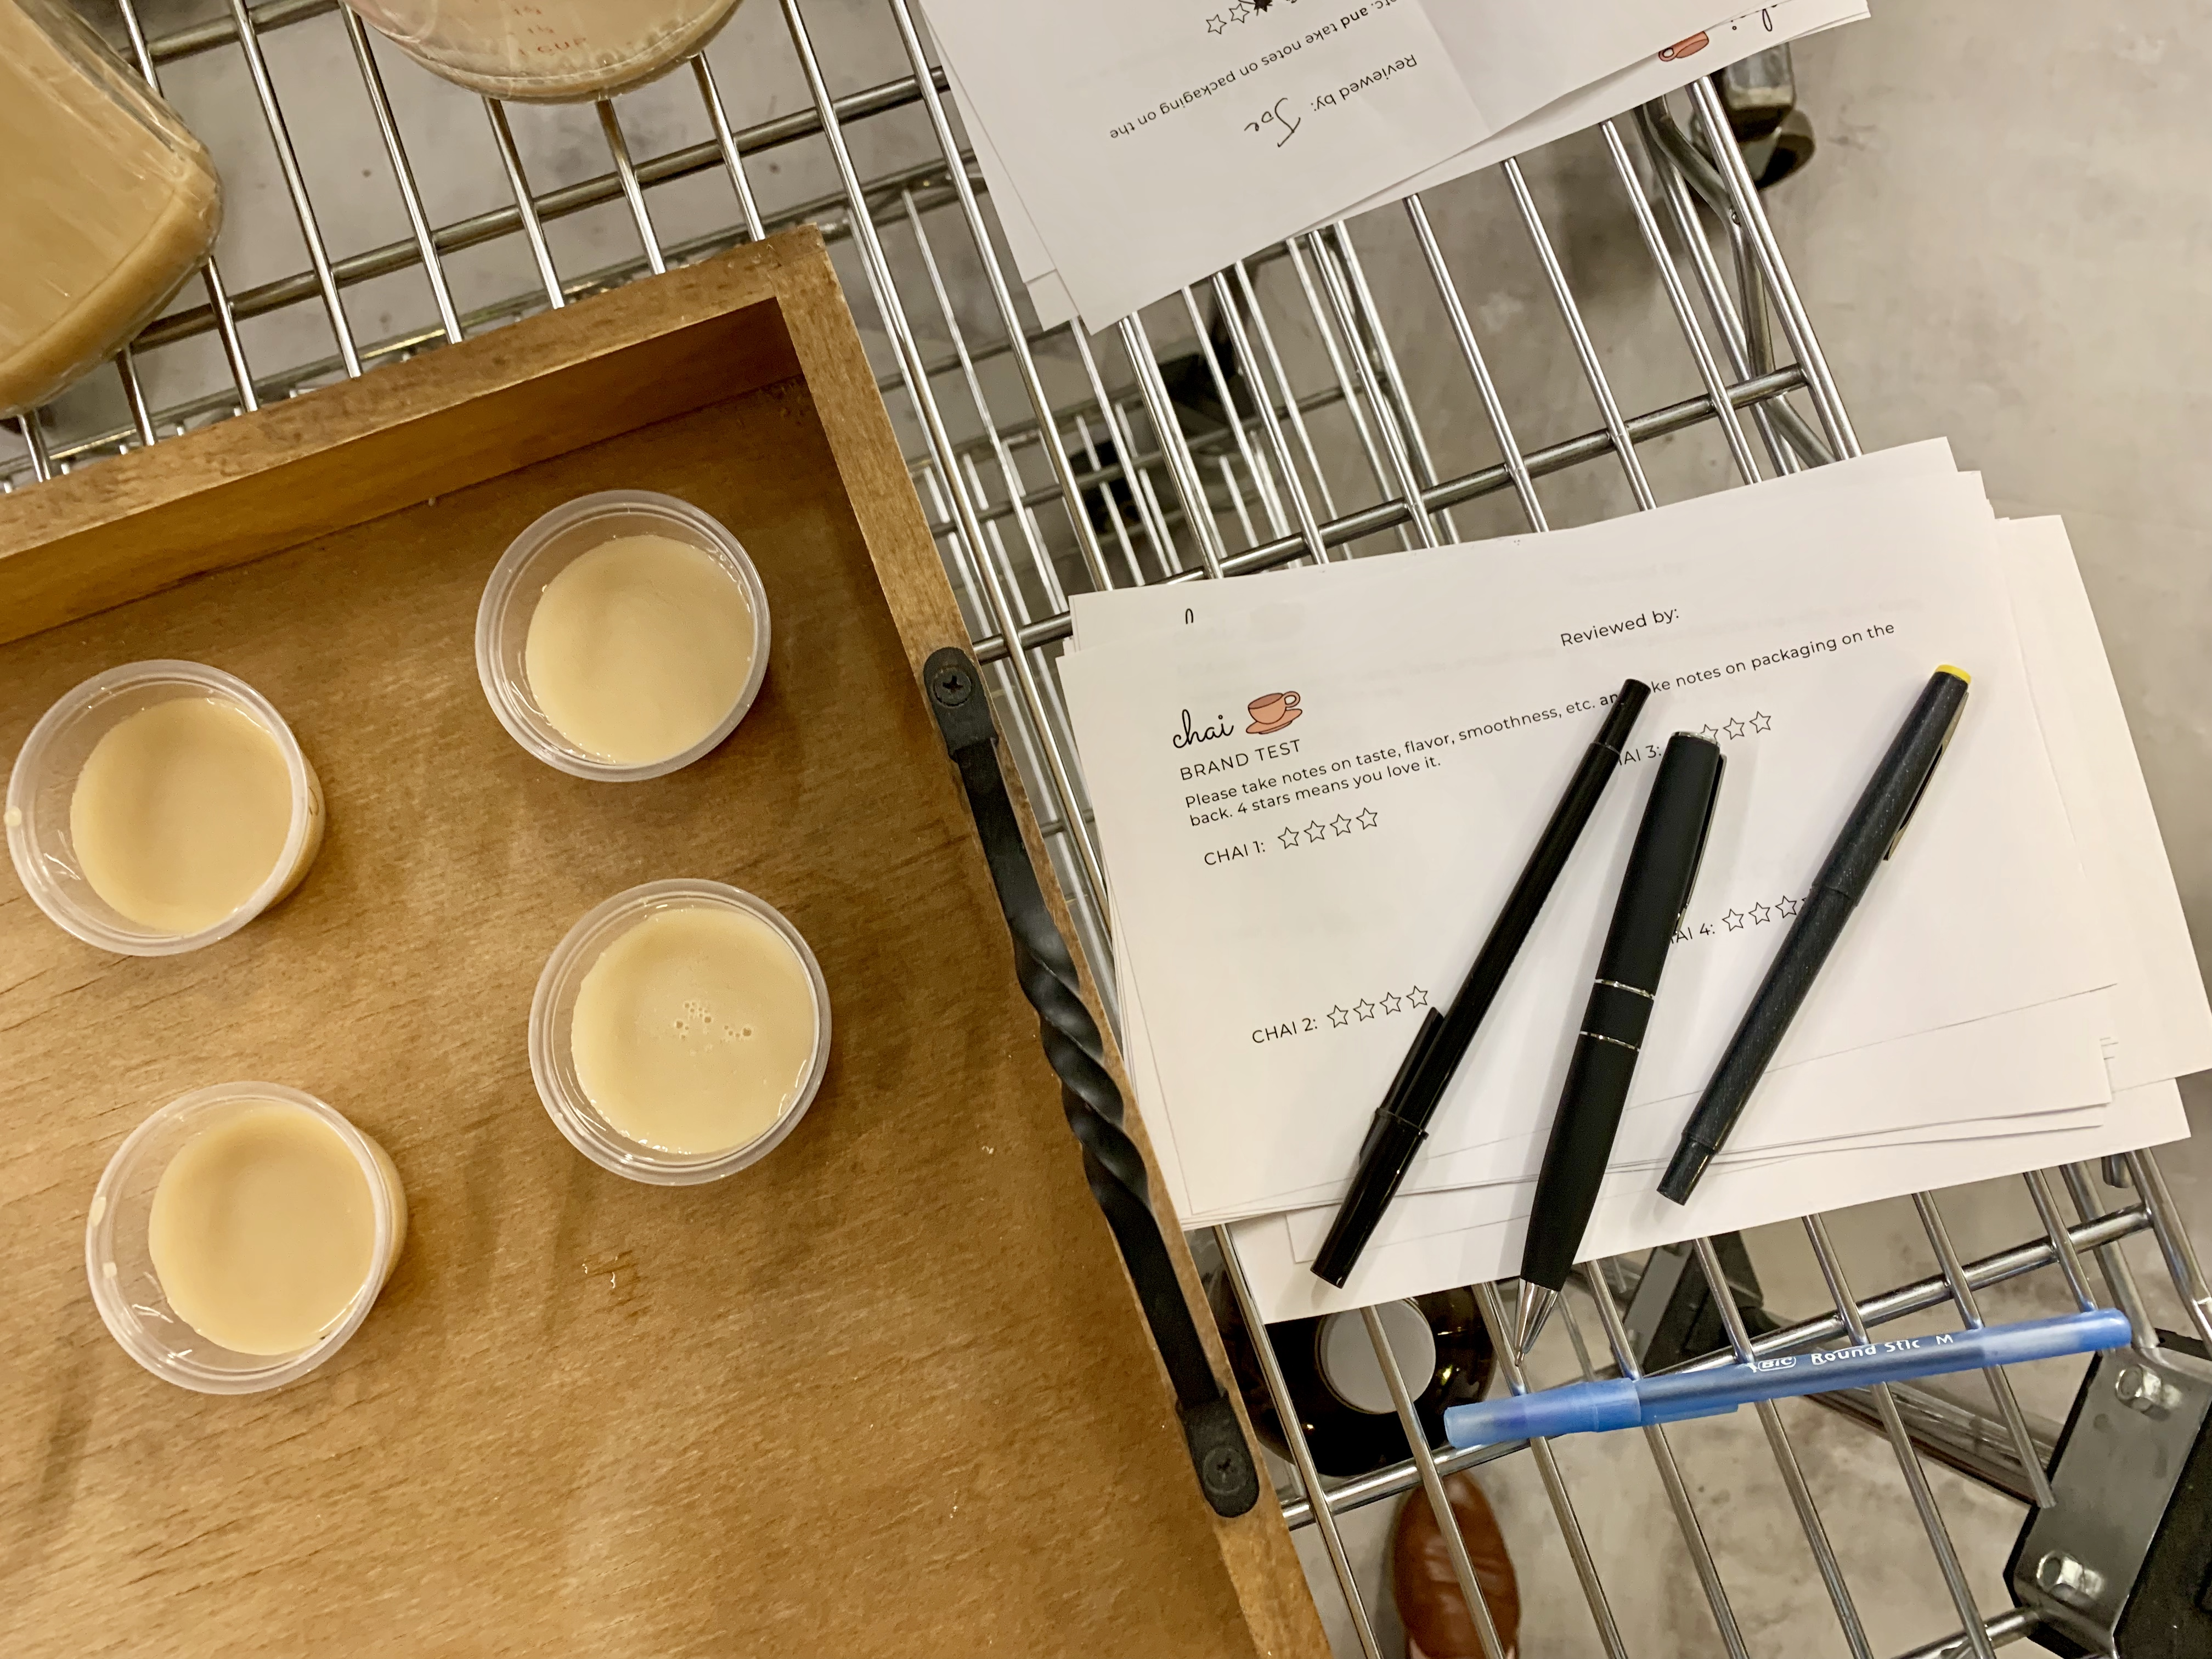 Score Cards To Compare Different Brands Of Chai